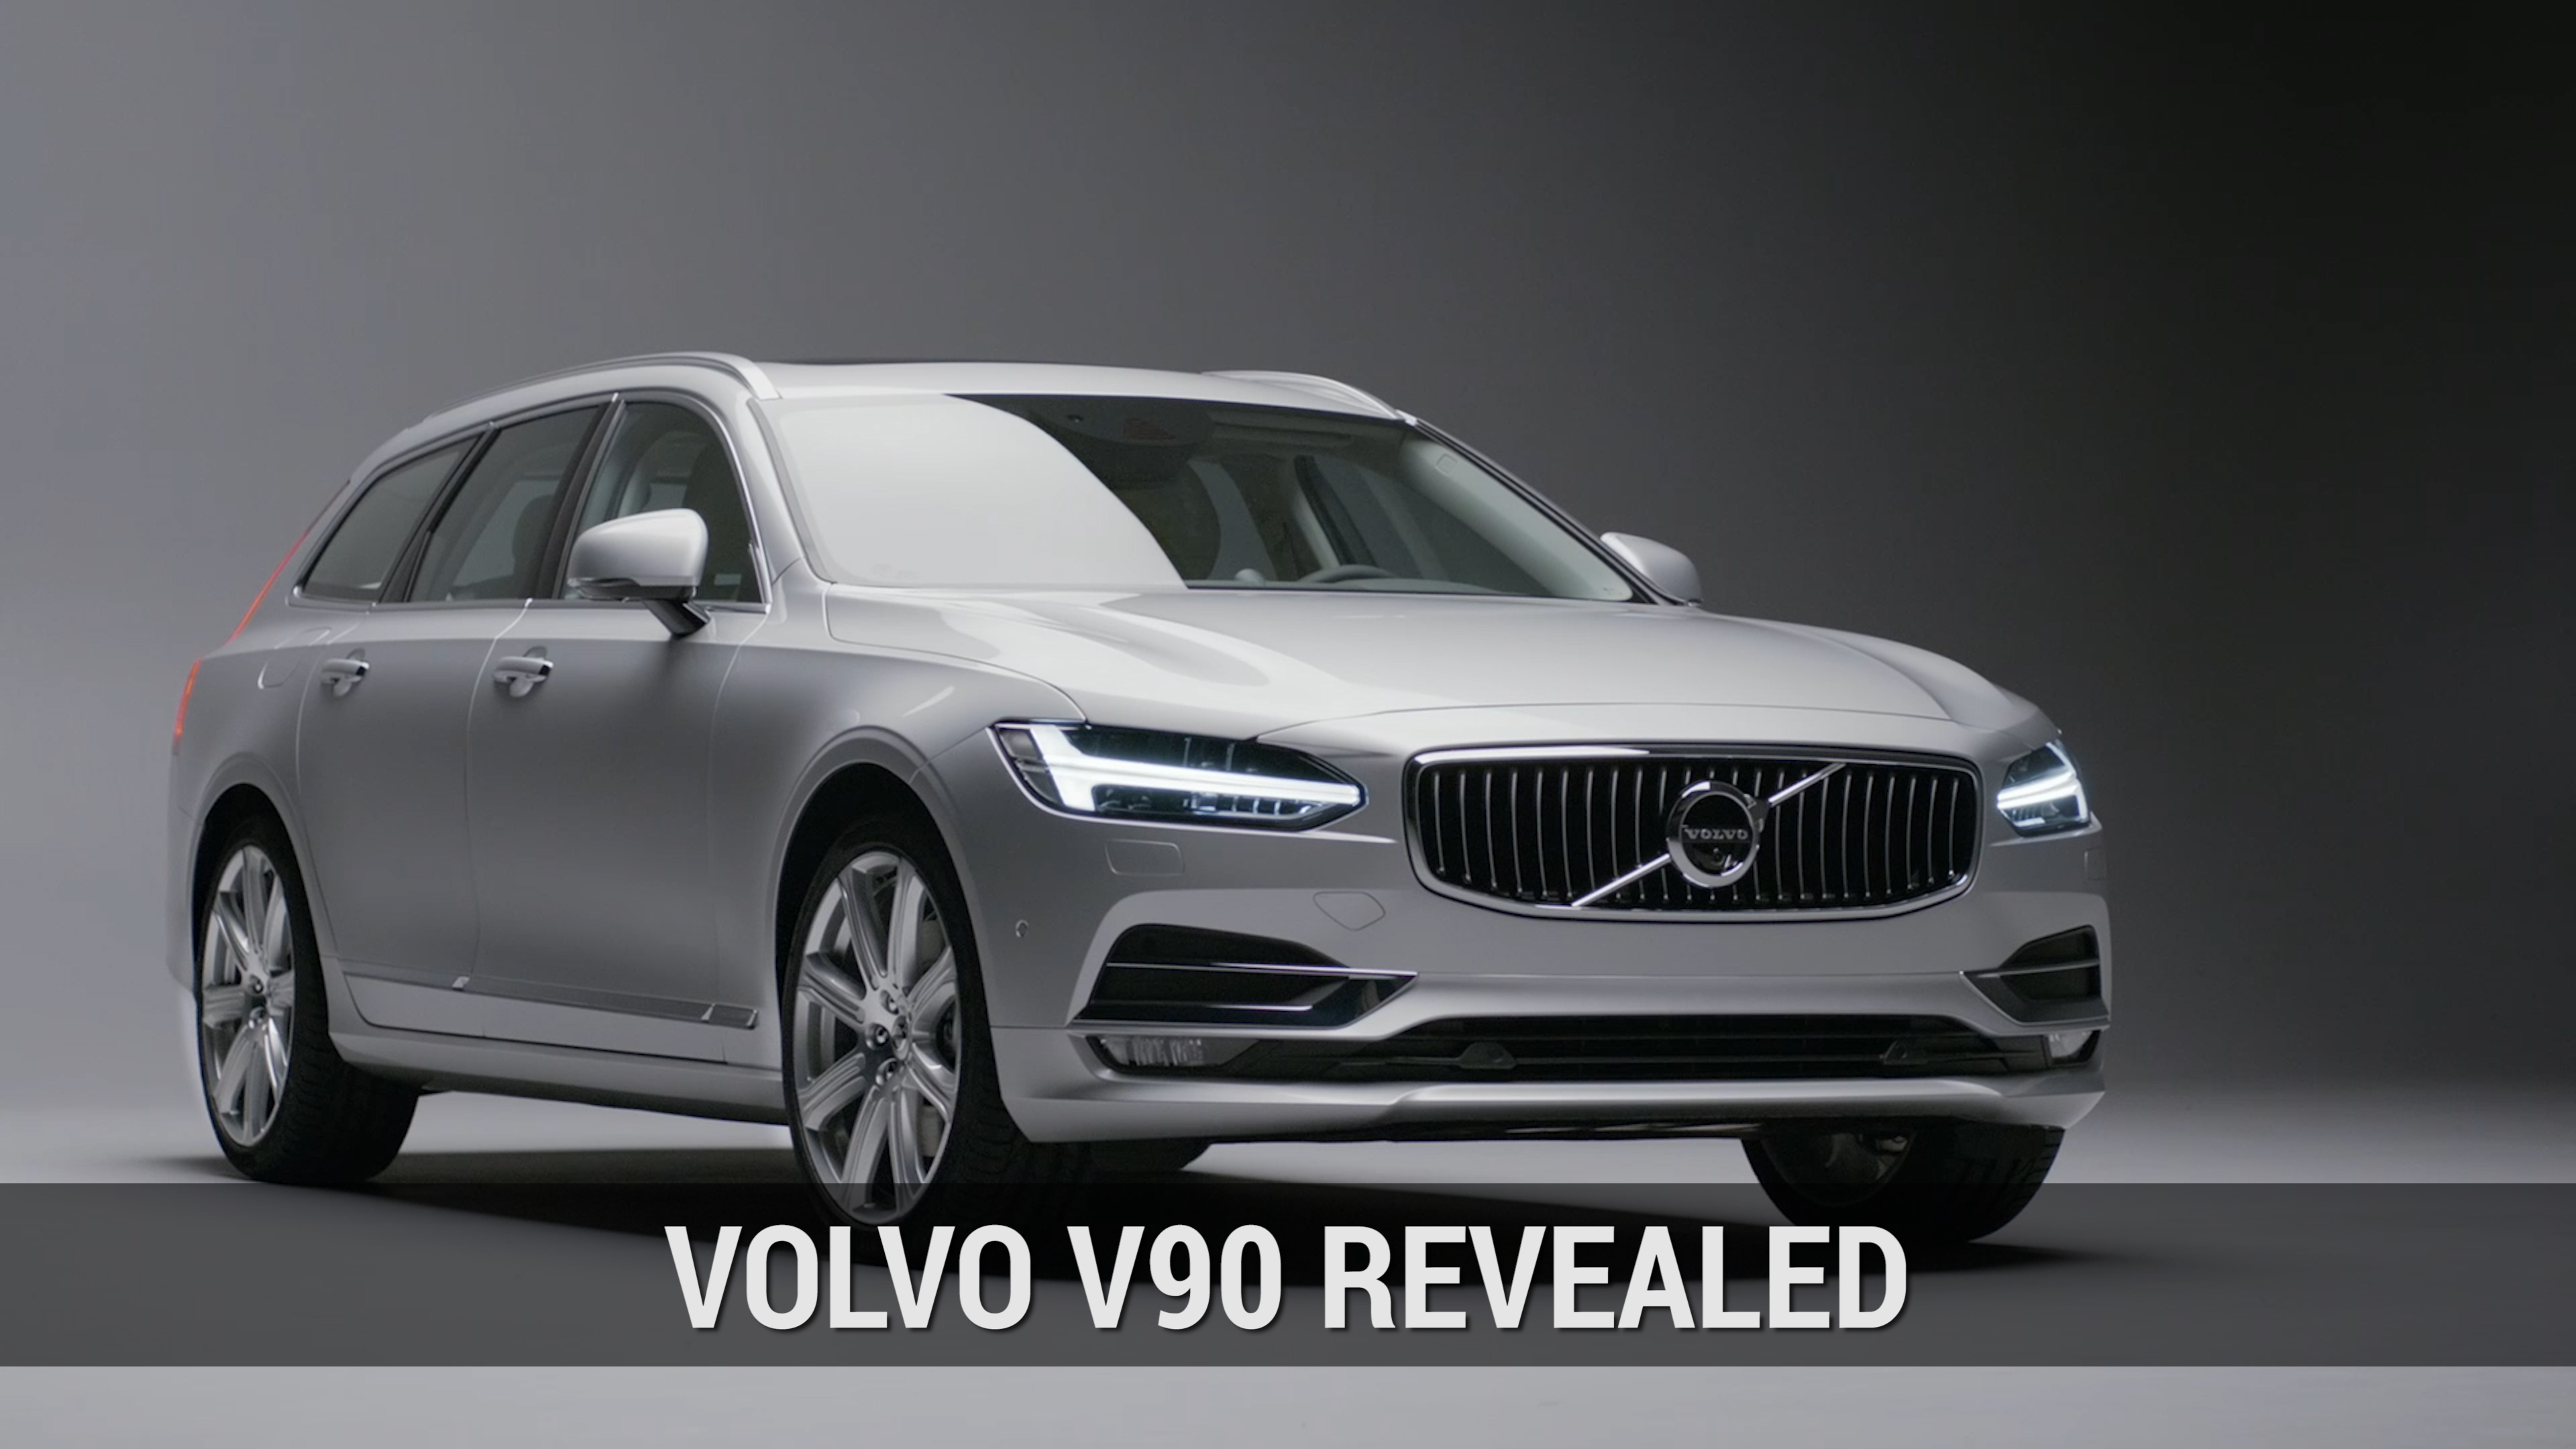 Volvo V90 Wagon Video | Autoblog Minute